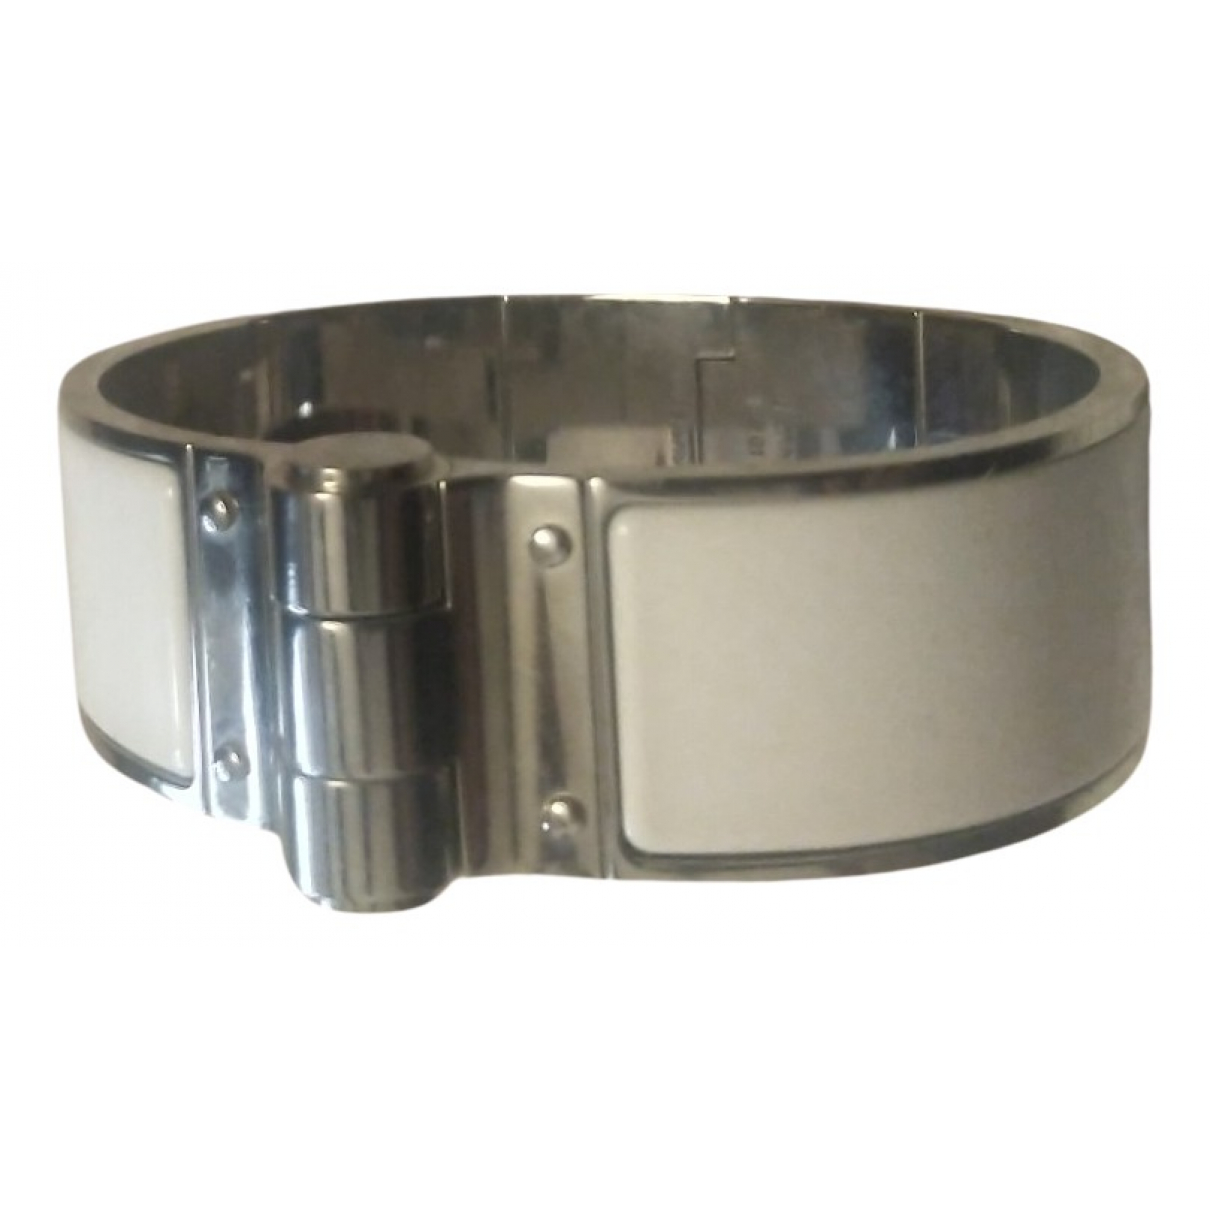 Hermes Bracelet Charniere Armband in  Weiss Silber